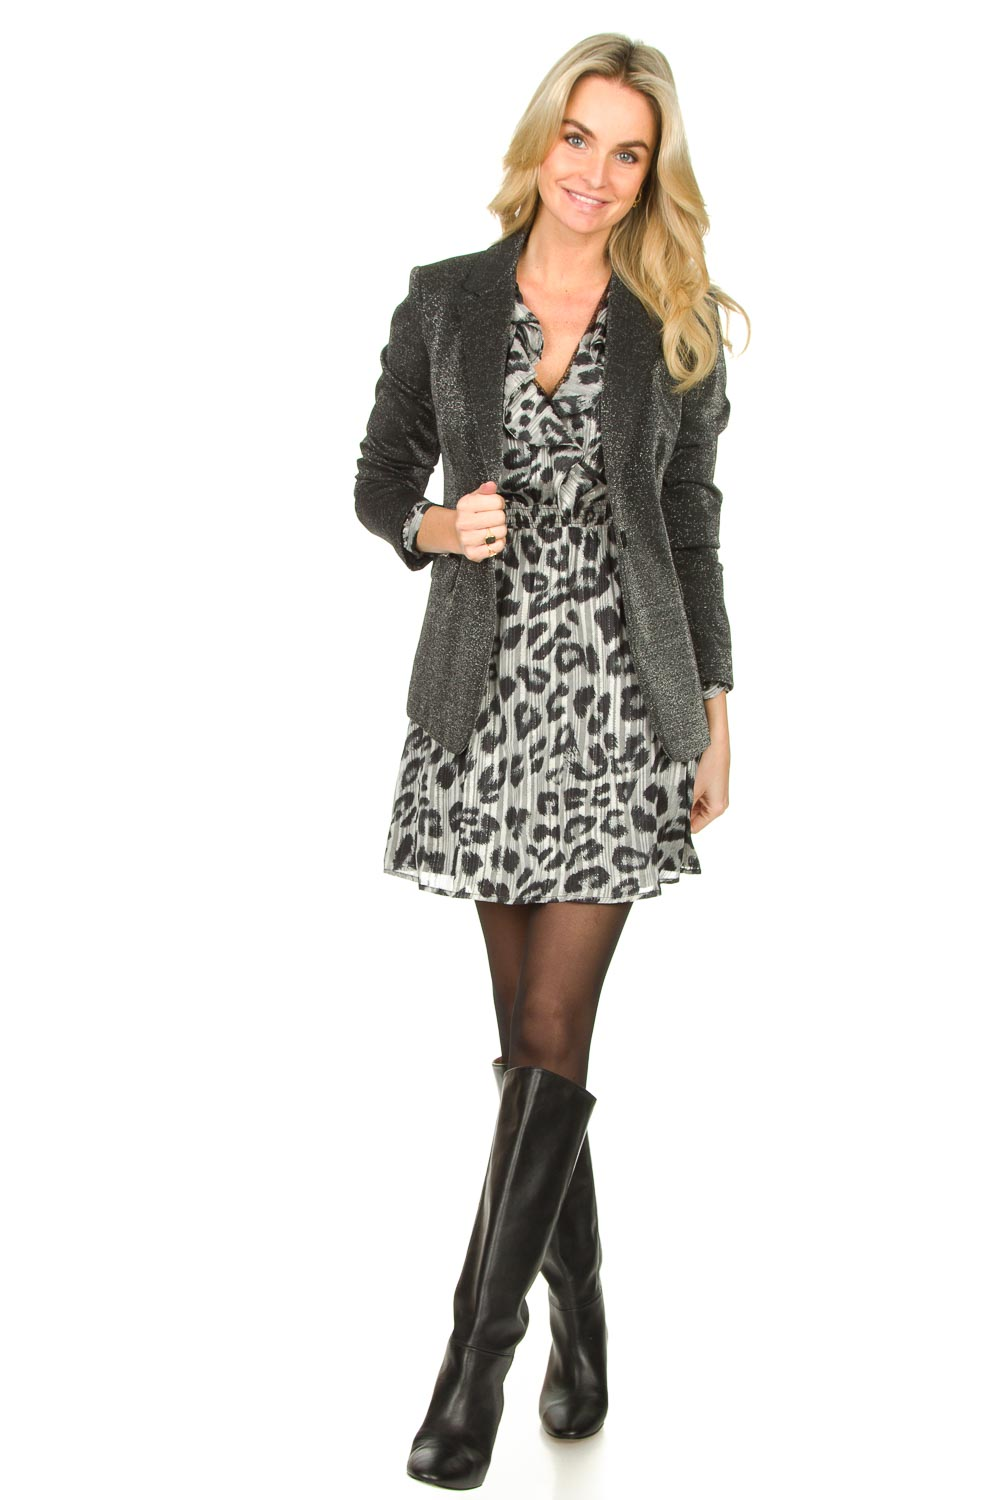 Look Leopard printed dress Gianna